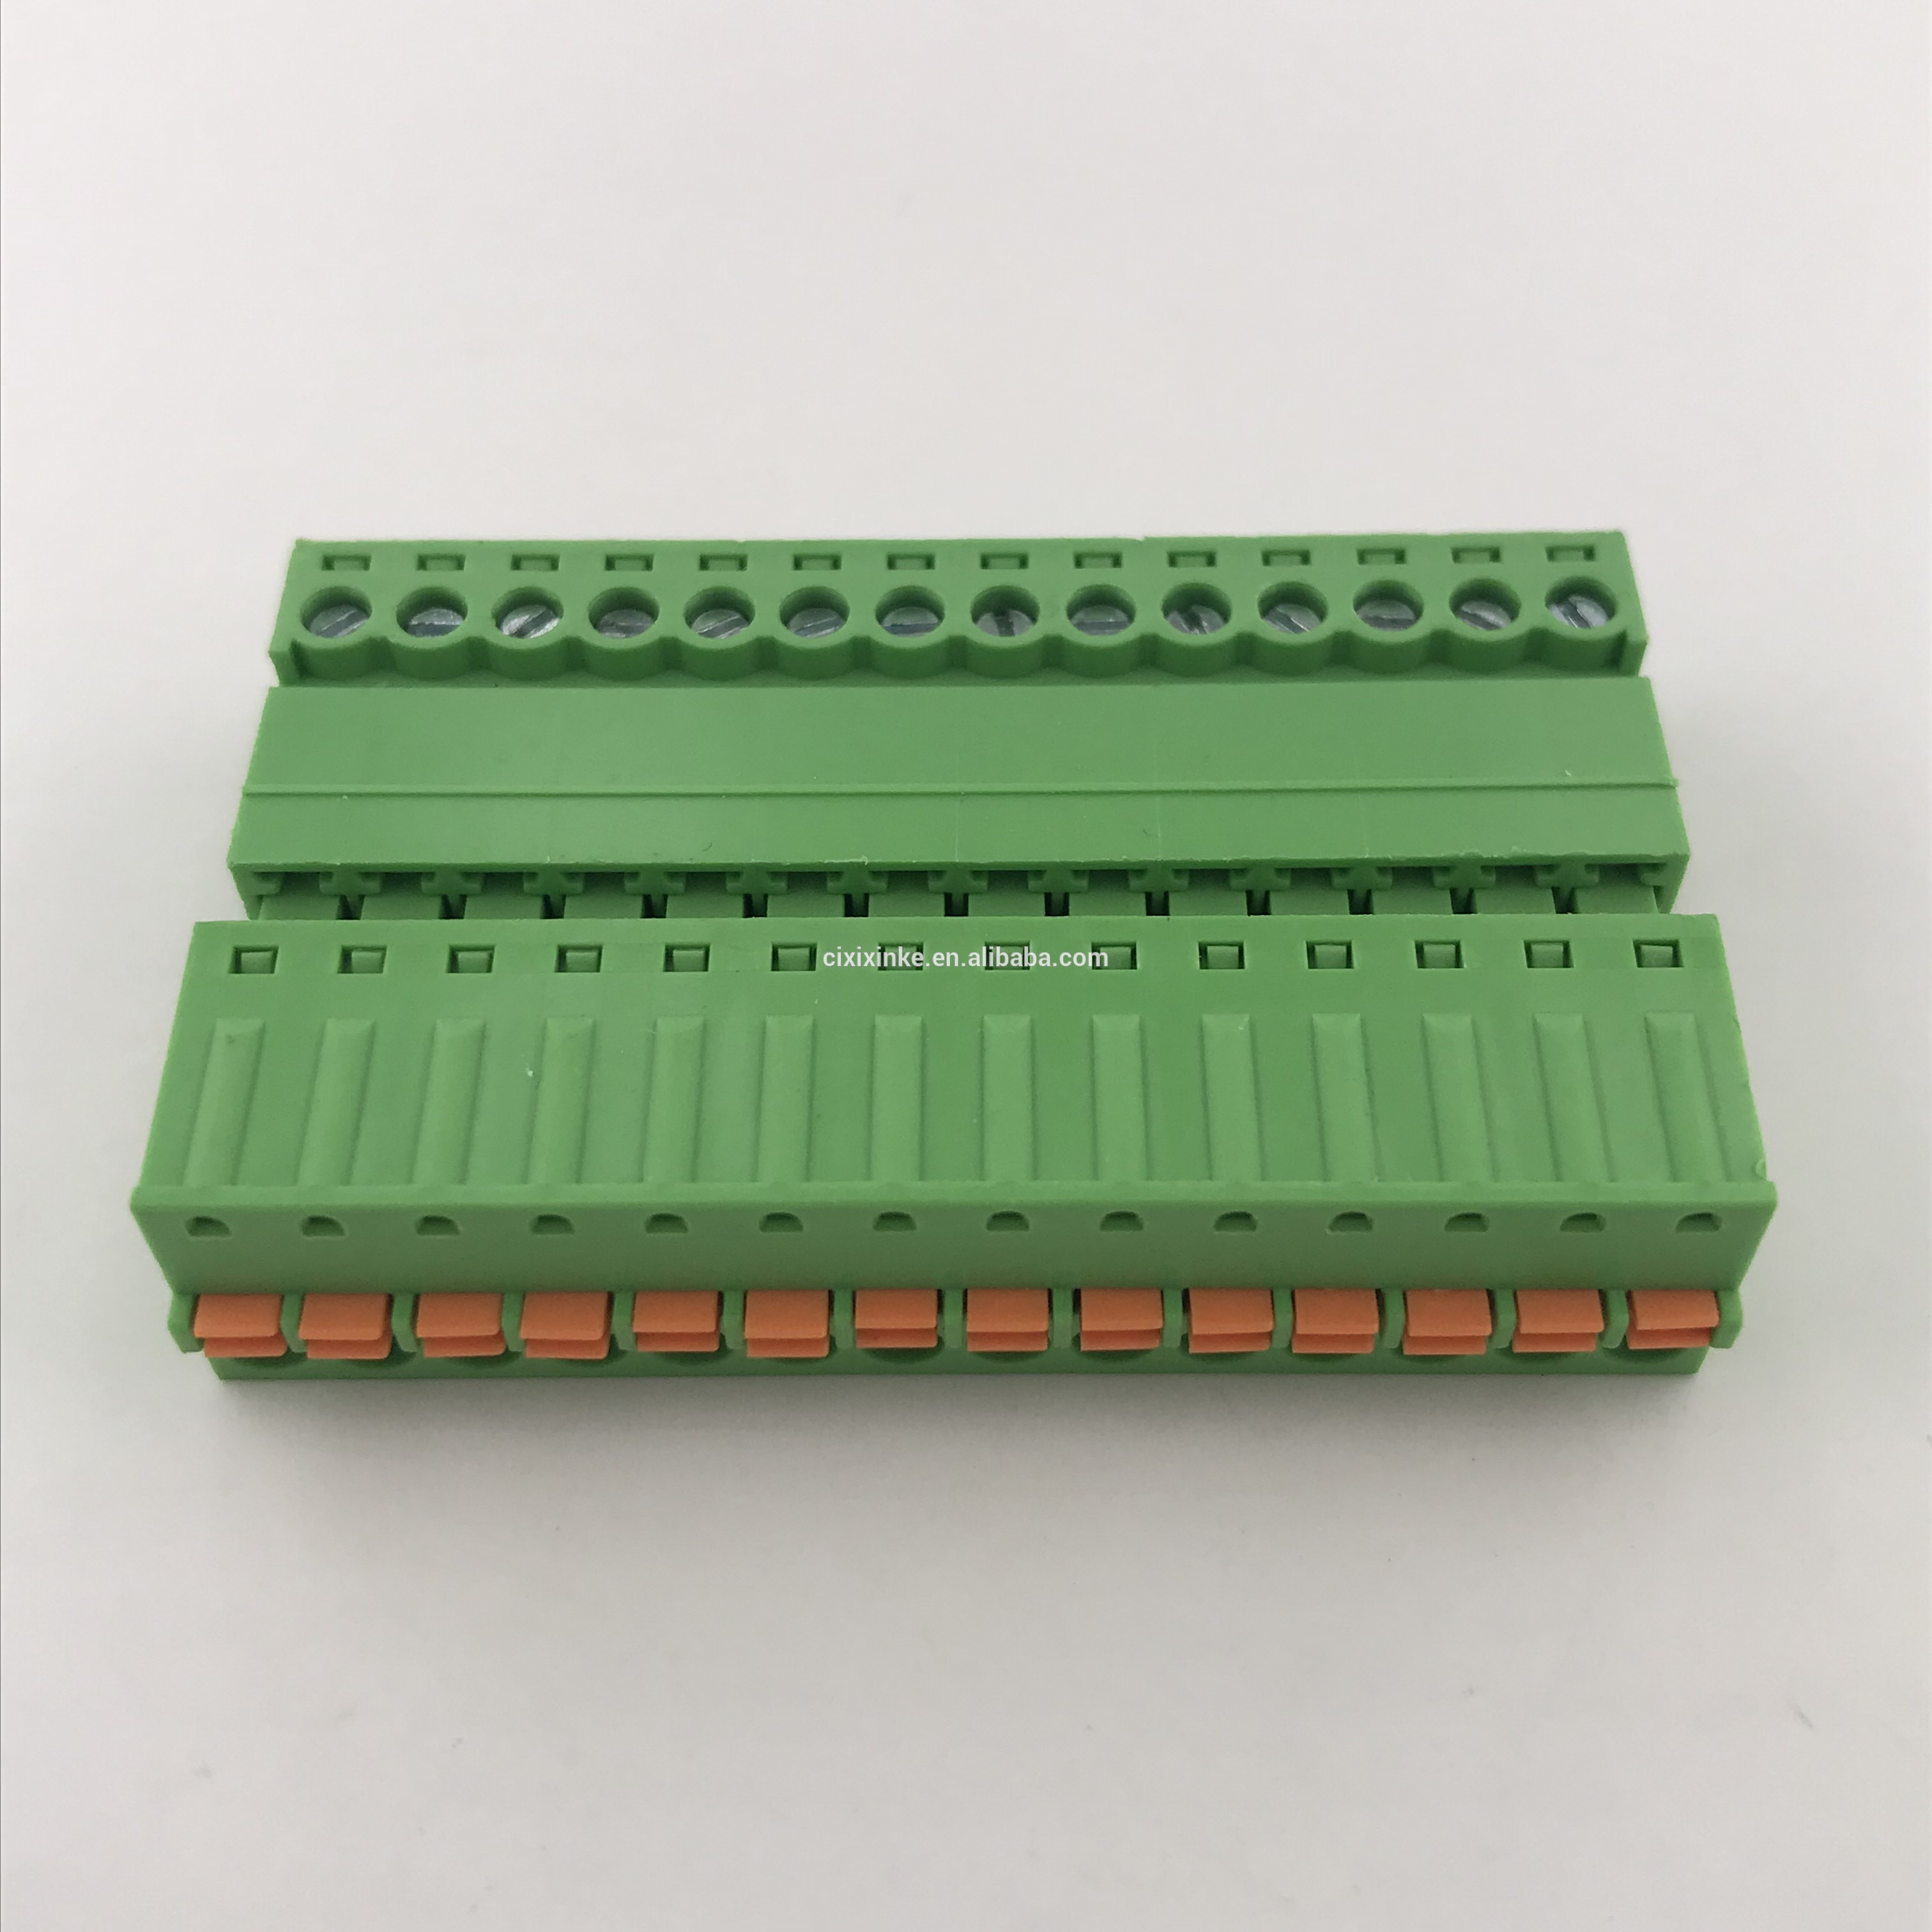 14pin male to female pluggable spring terminal block